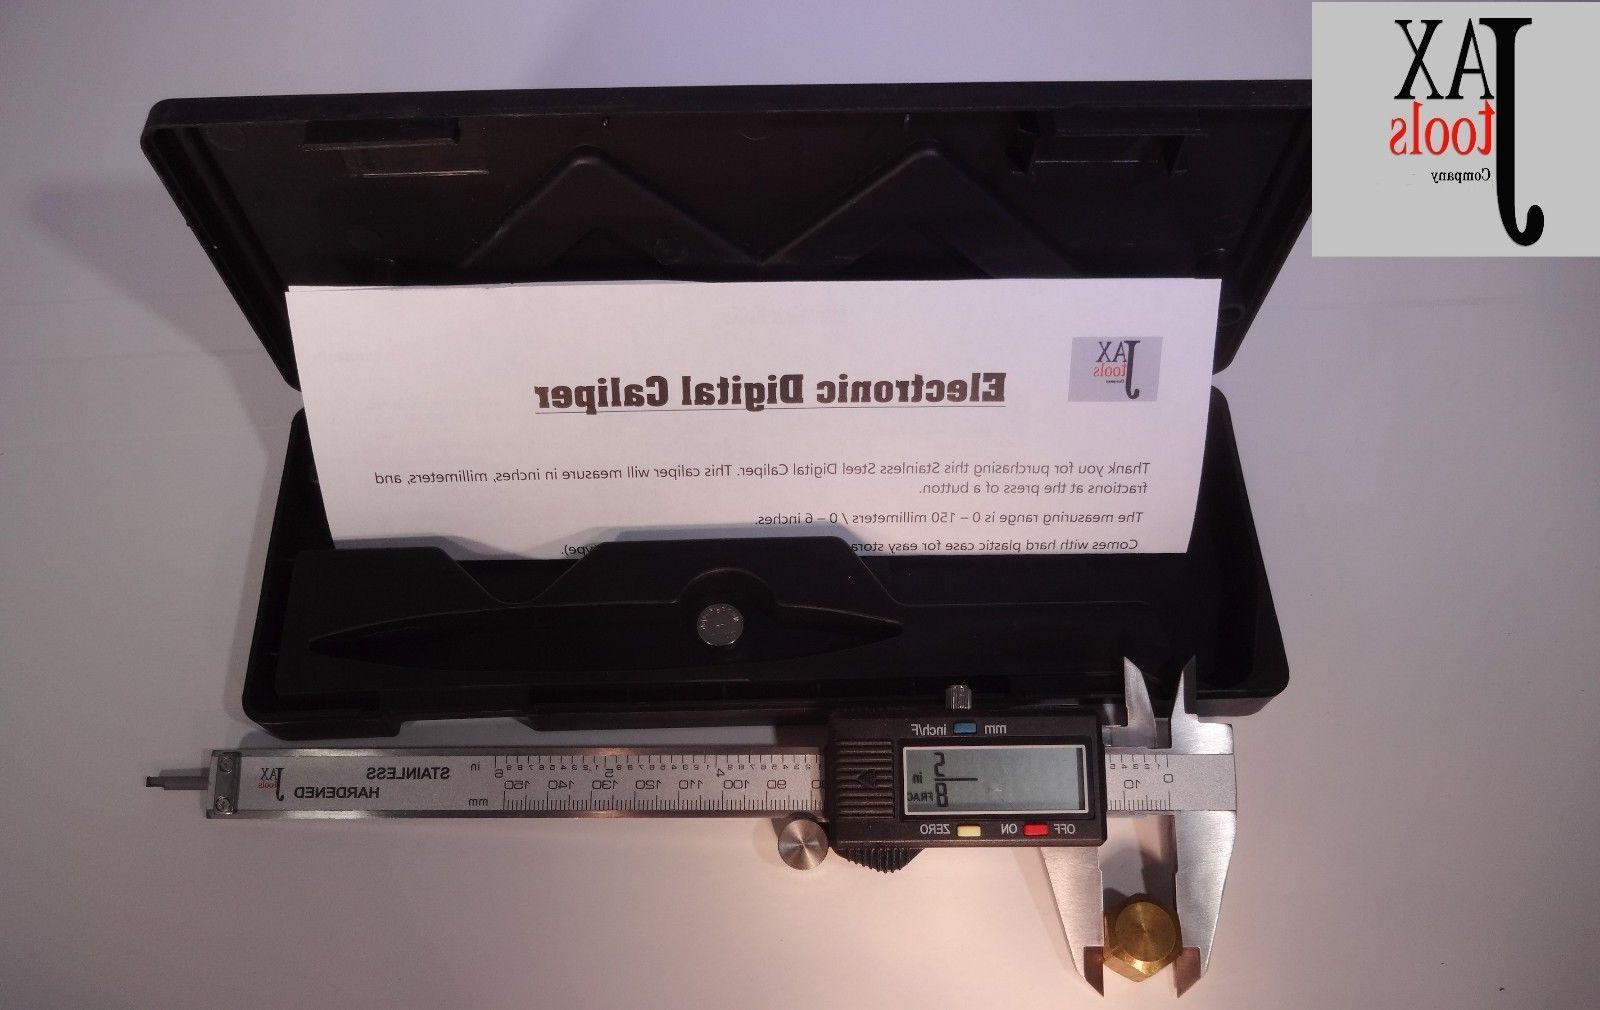 caliper 6 inch 150mm displays fractions inches